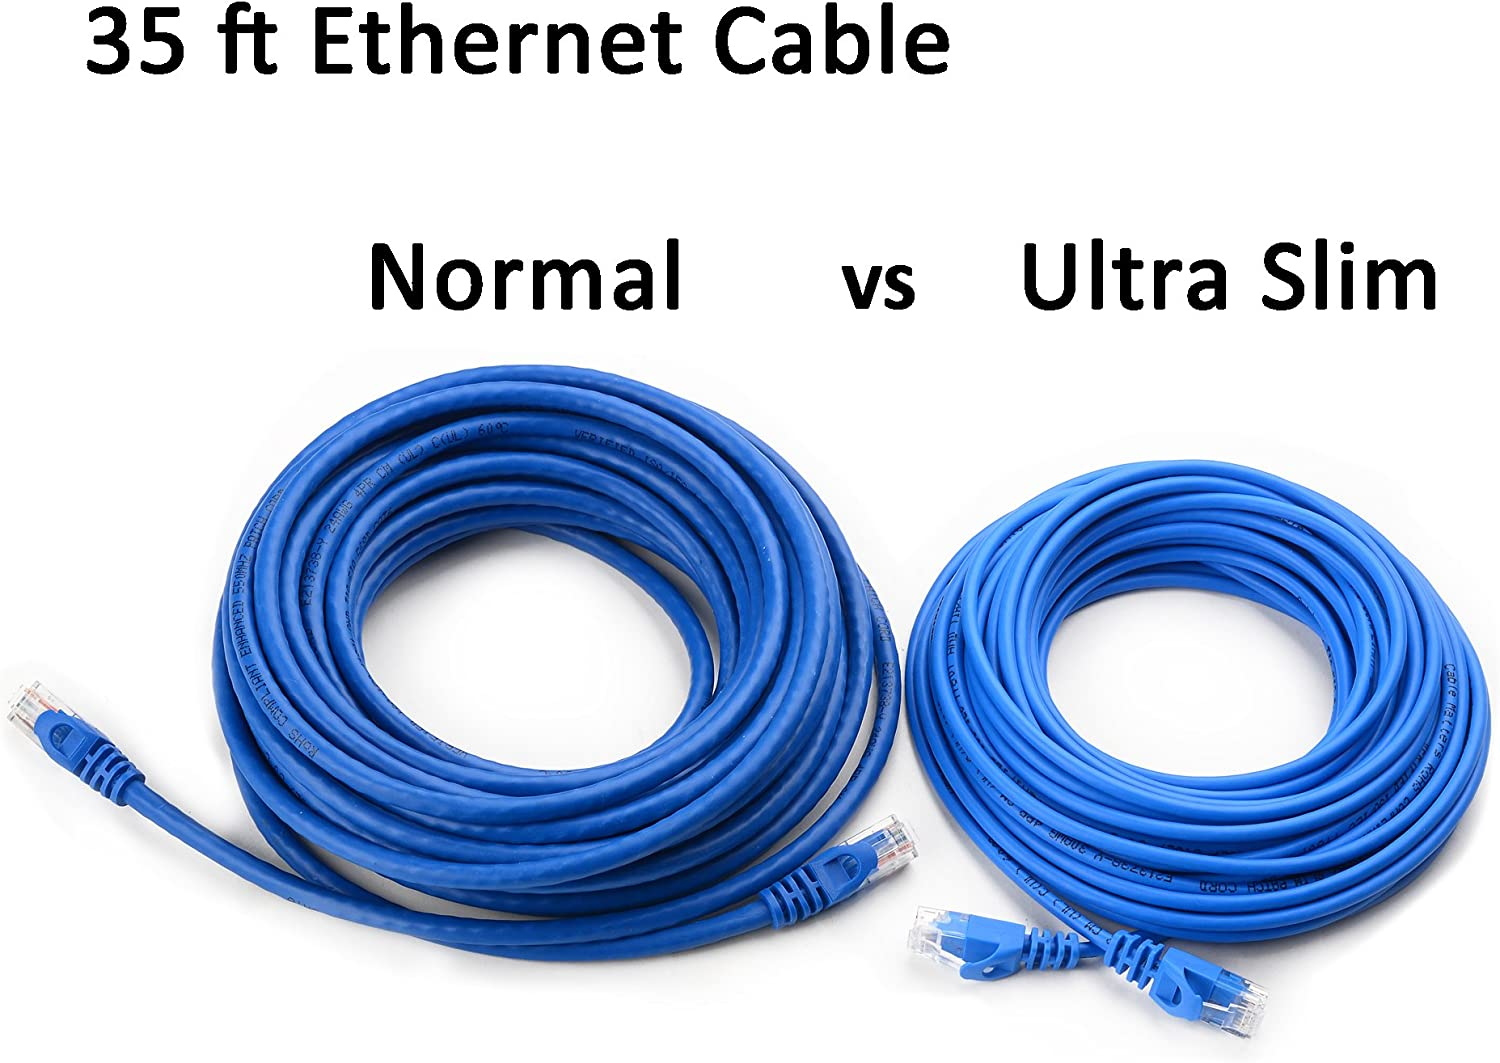 Cable Matters 5-Pack Ultra Slim Cat6 Snagless Ethernet Patch Cable Blue 7 FT